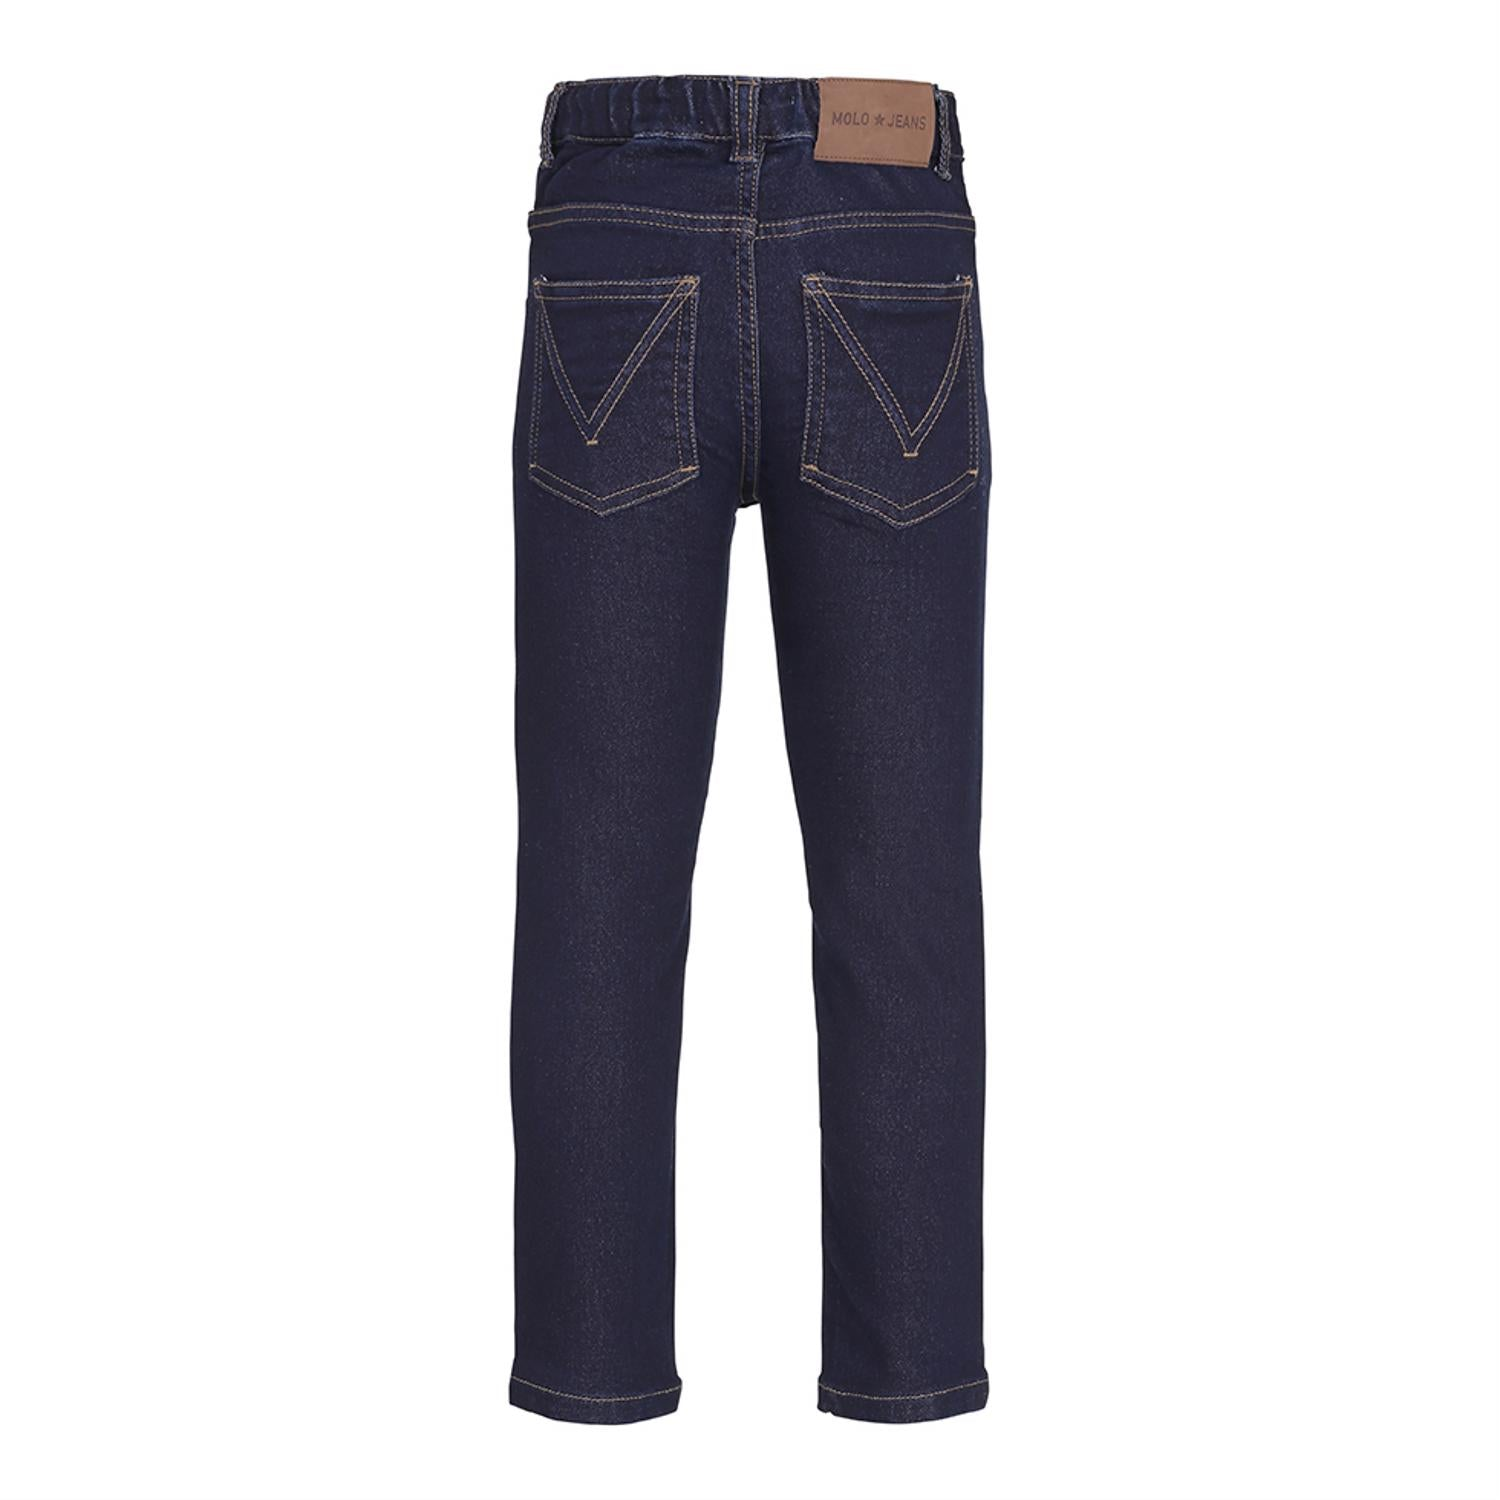 Designer Kids Fashion at Bloom Moda Online Children's Boutique - Molo Augustin Rinse Wash Jeans,  Pants